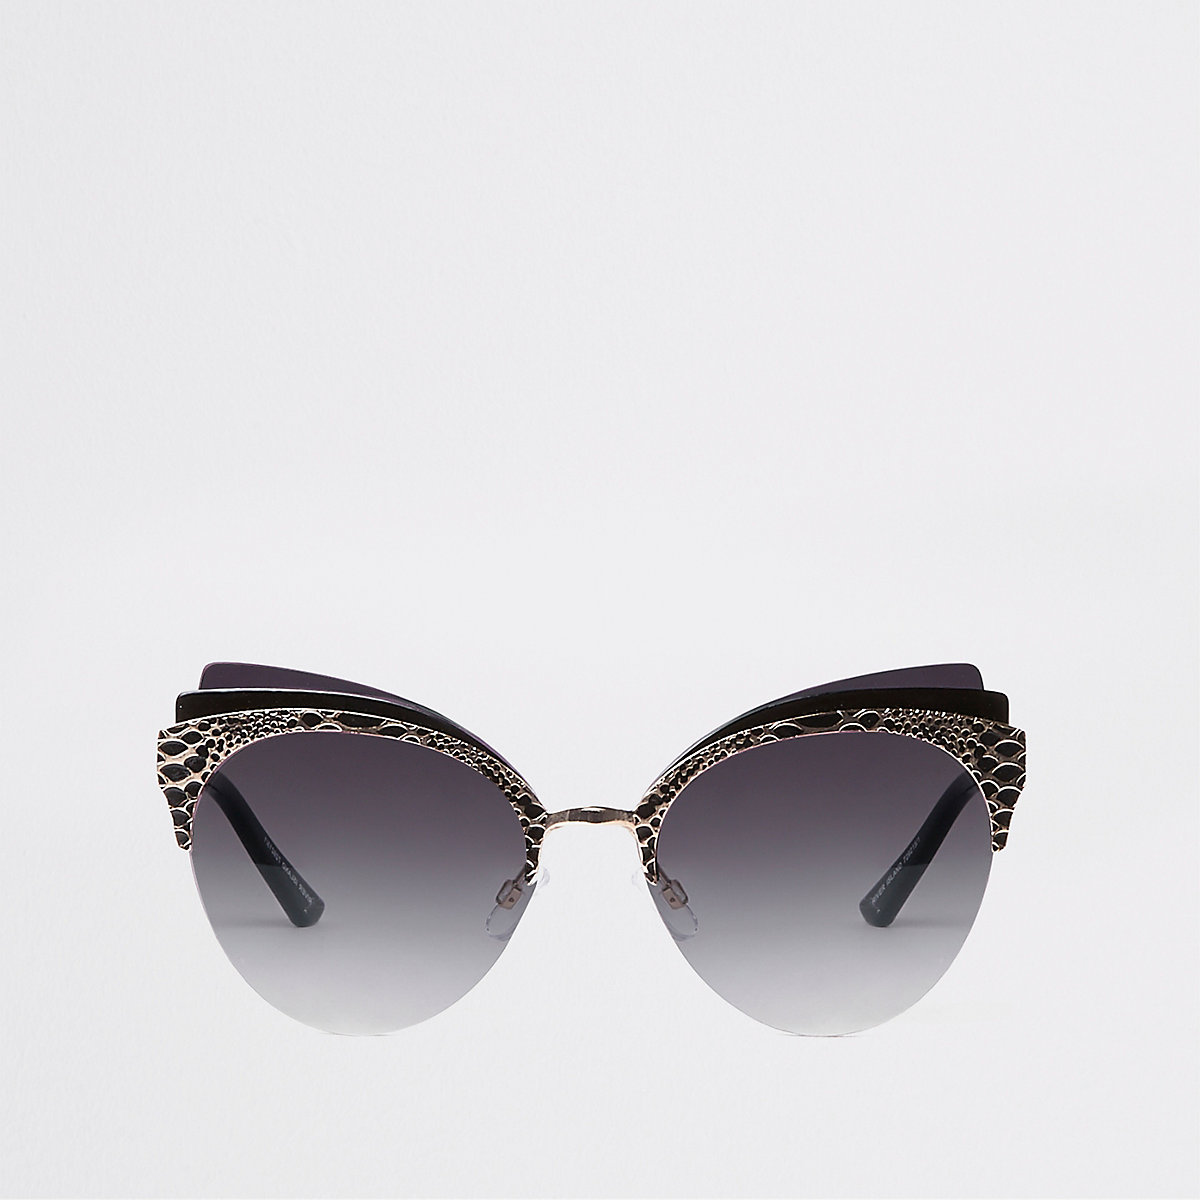 Gold color triple layer cat eye sunglasses